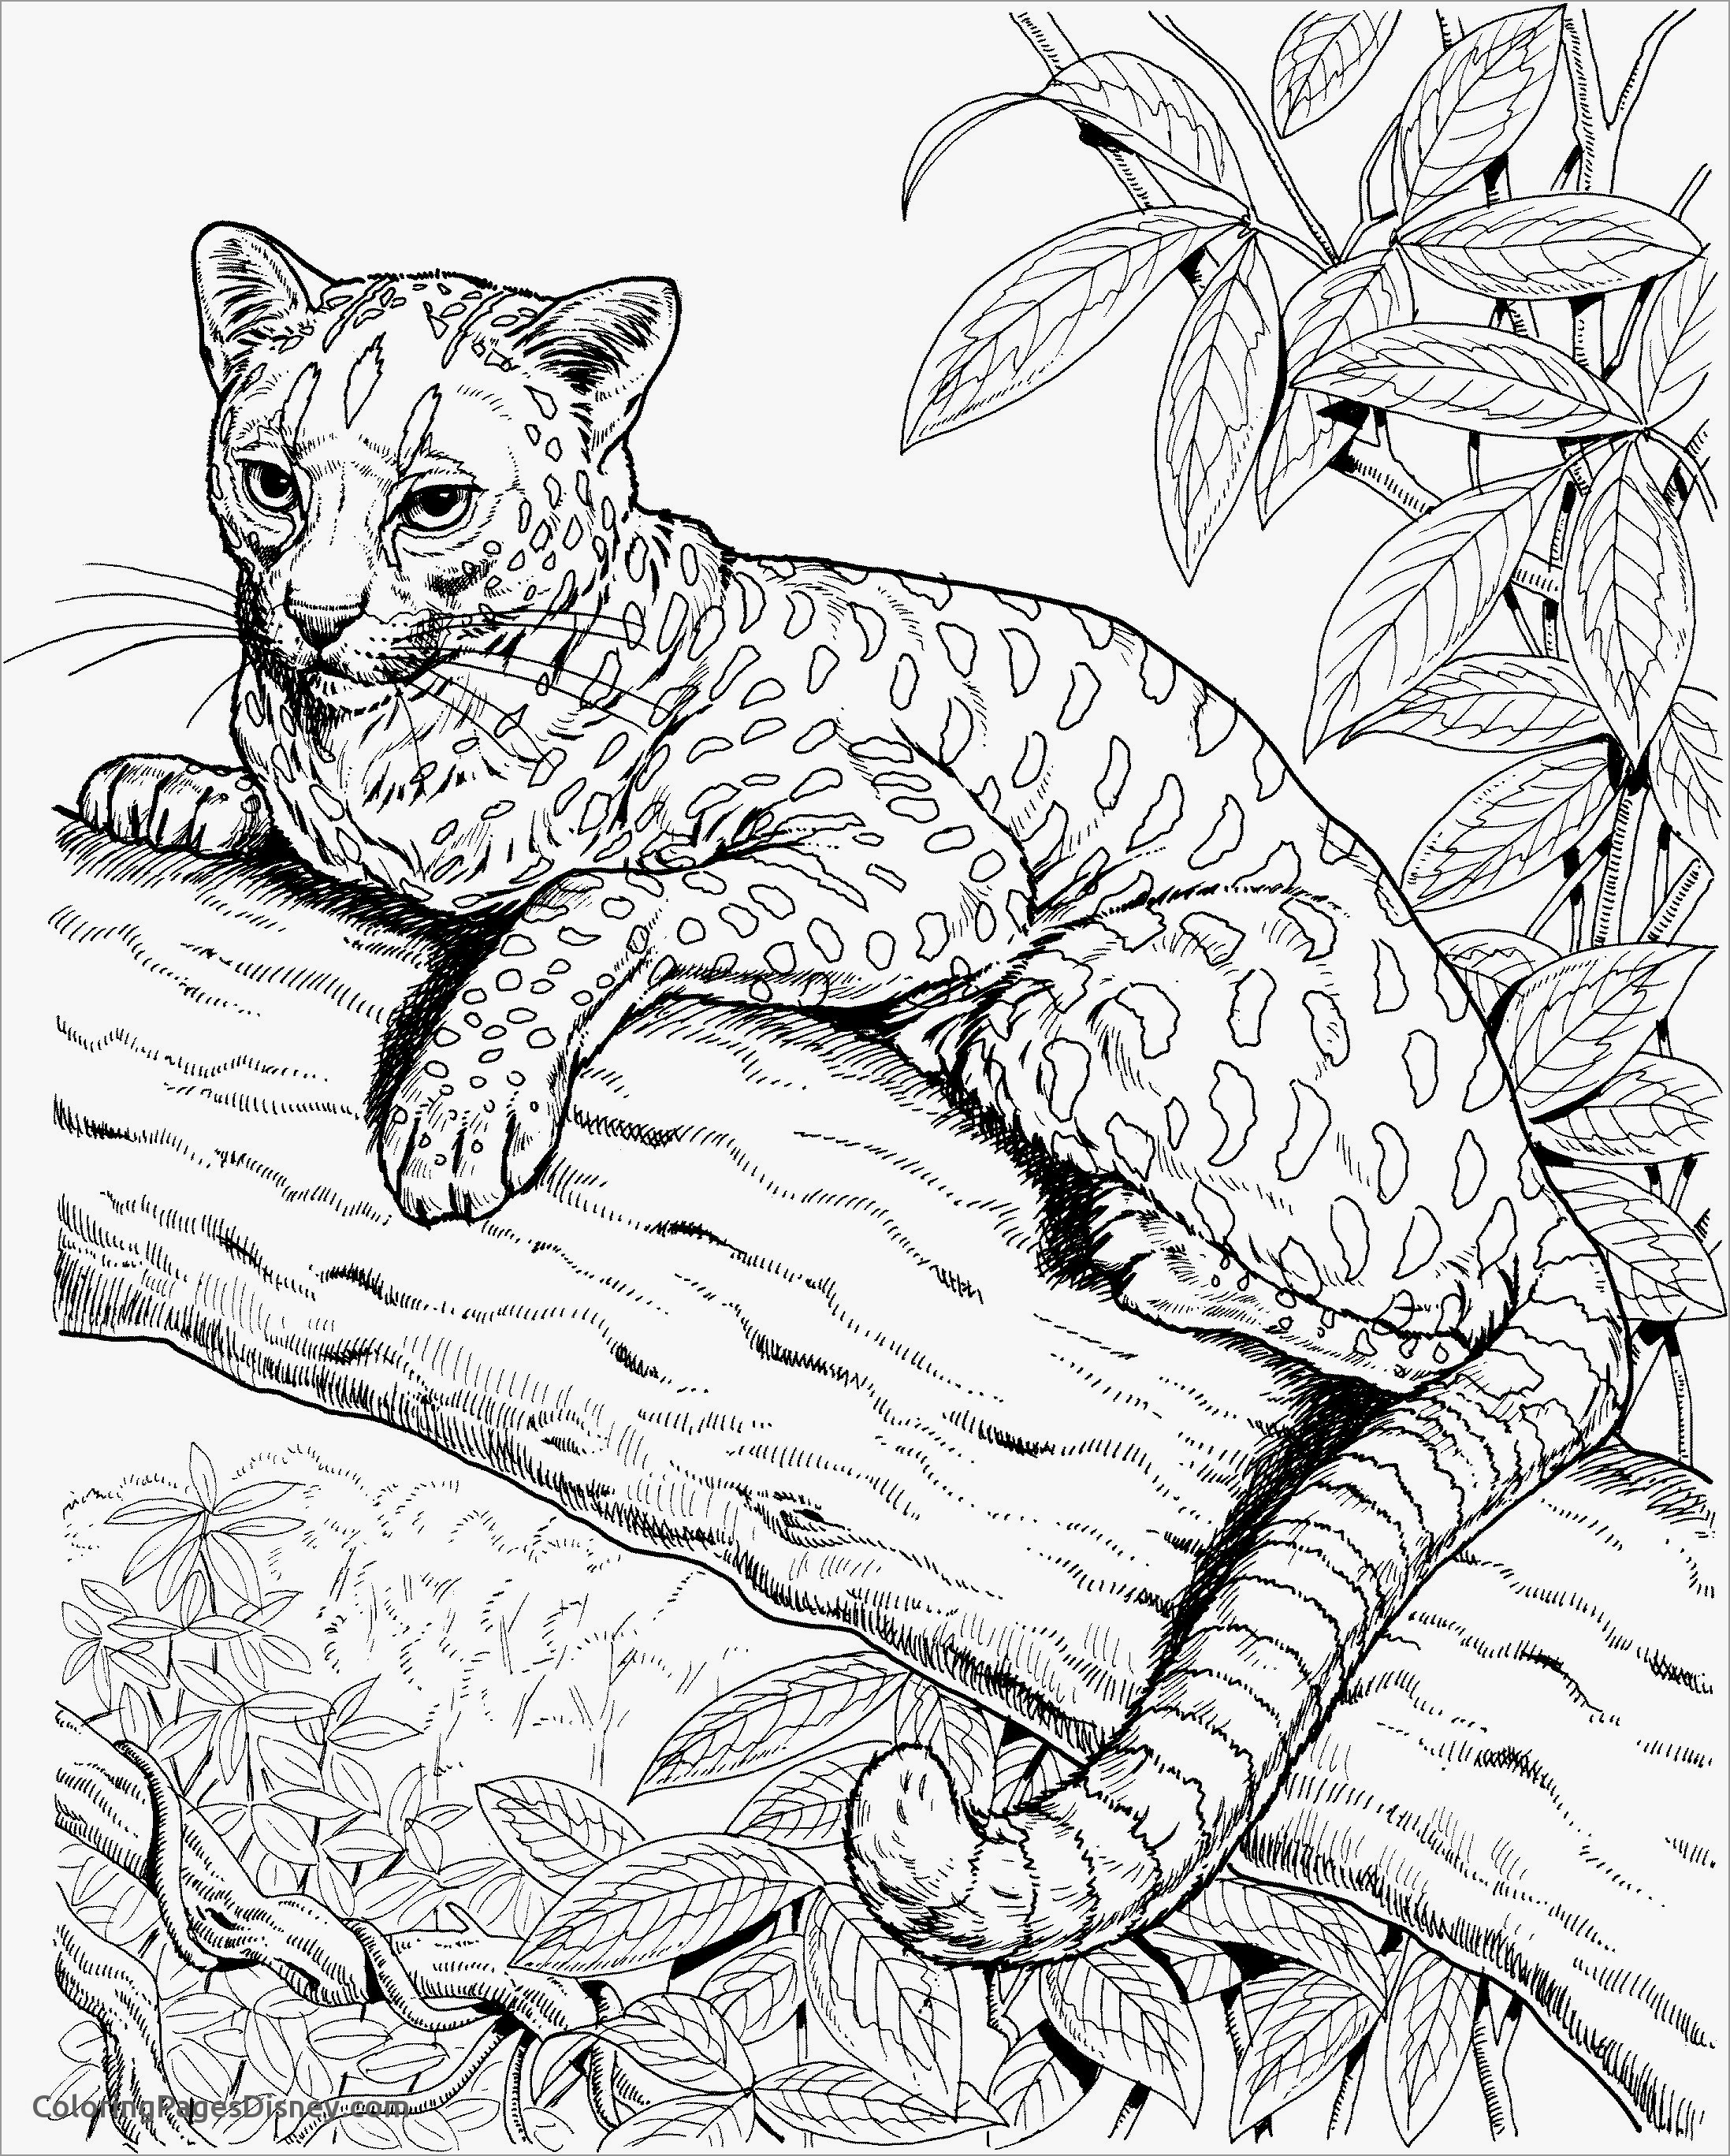 coloring pictures of cheetahs effortfulg cheetah print coloring pages coloring pictures cheetahs of